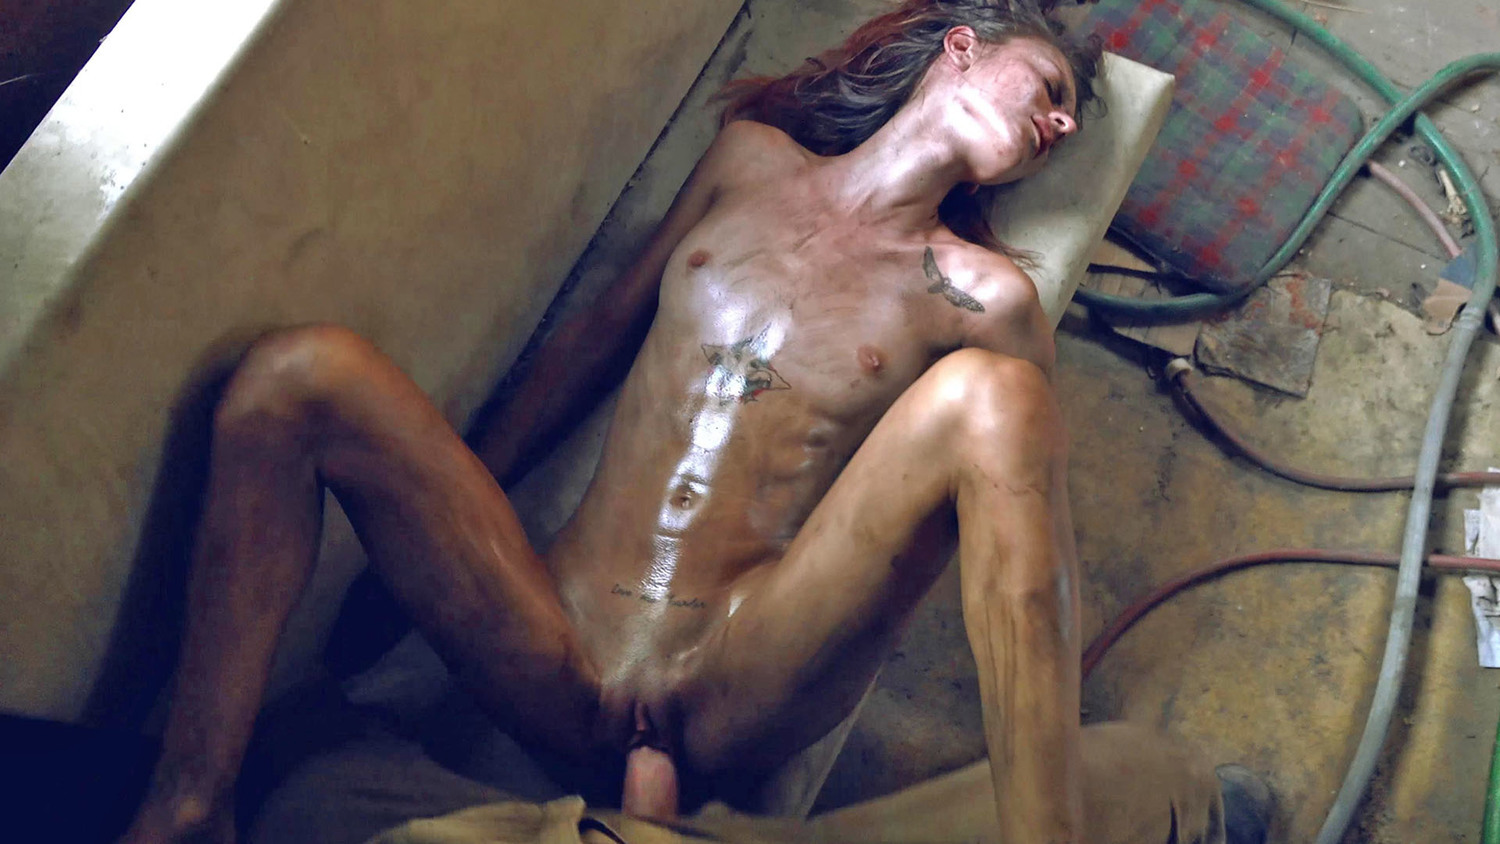 Horrorporn - the Beast from the Woods, HD Porn 80: xHamster | xHamster